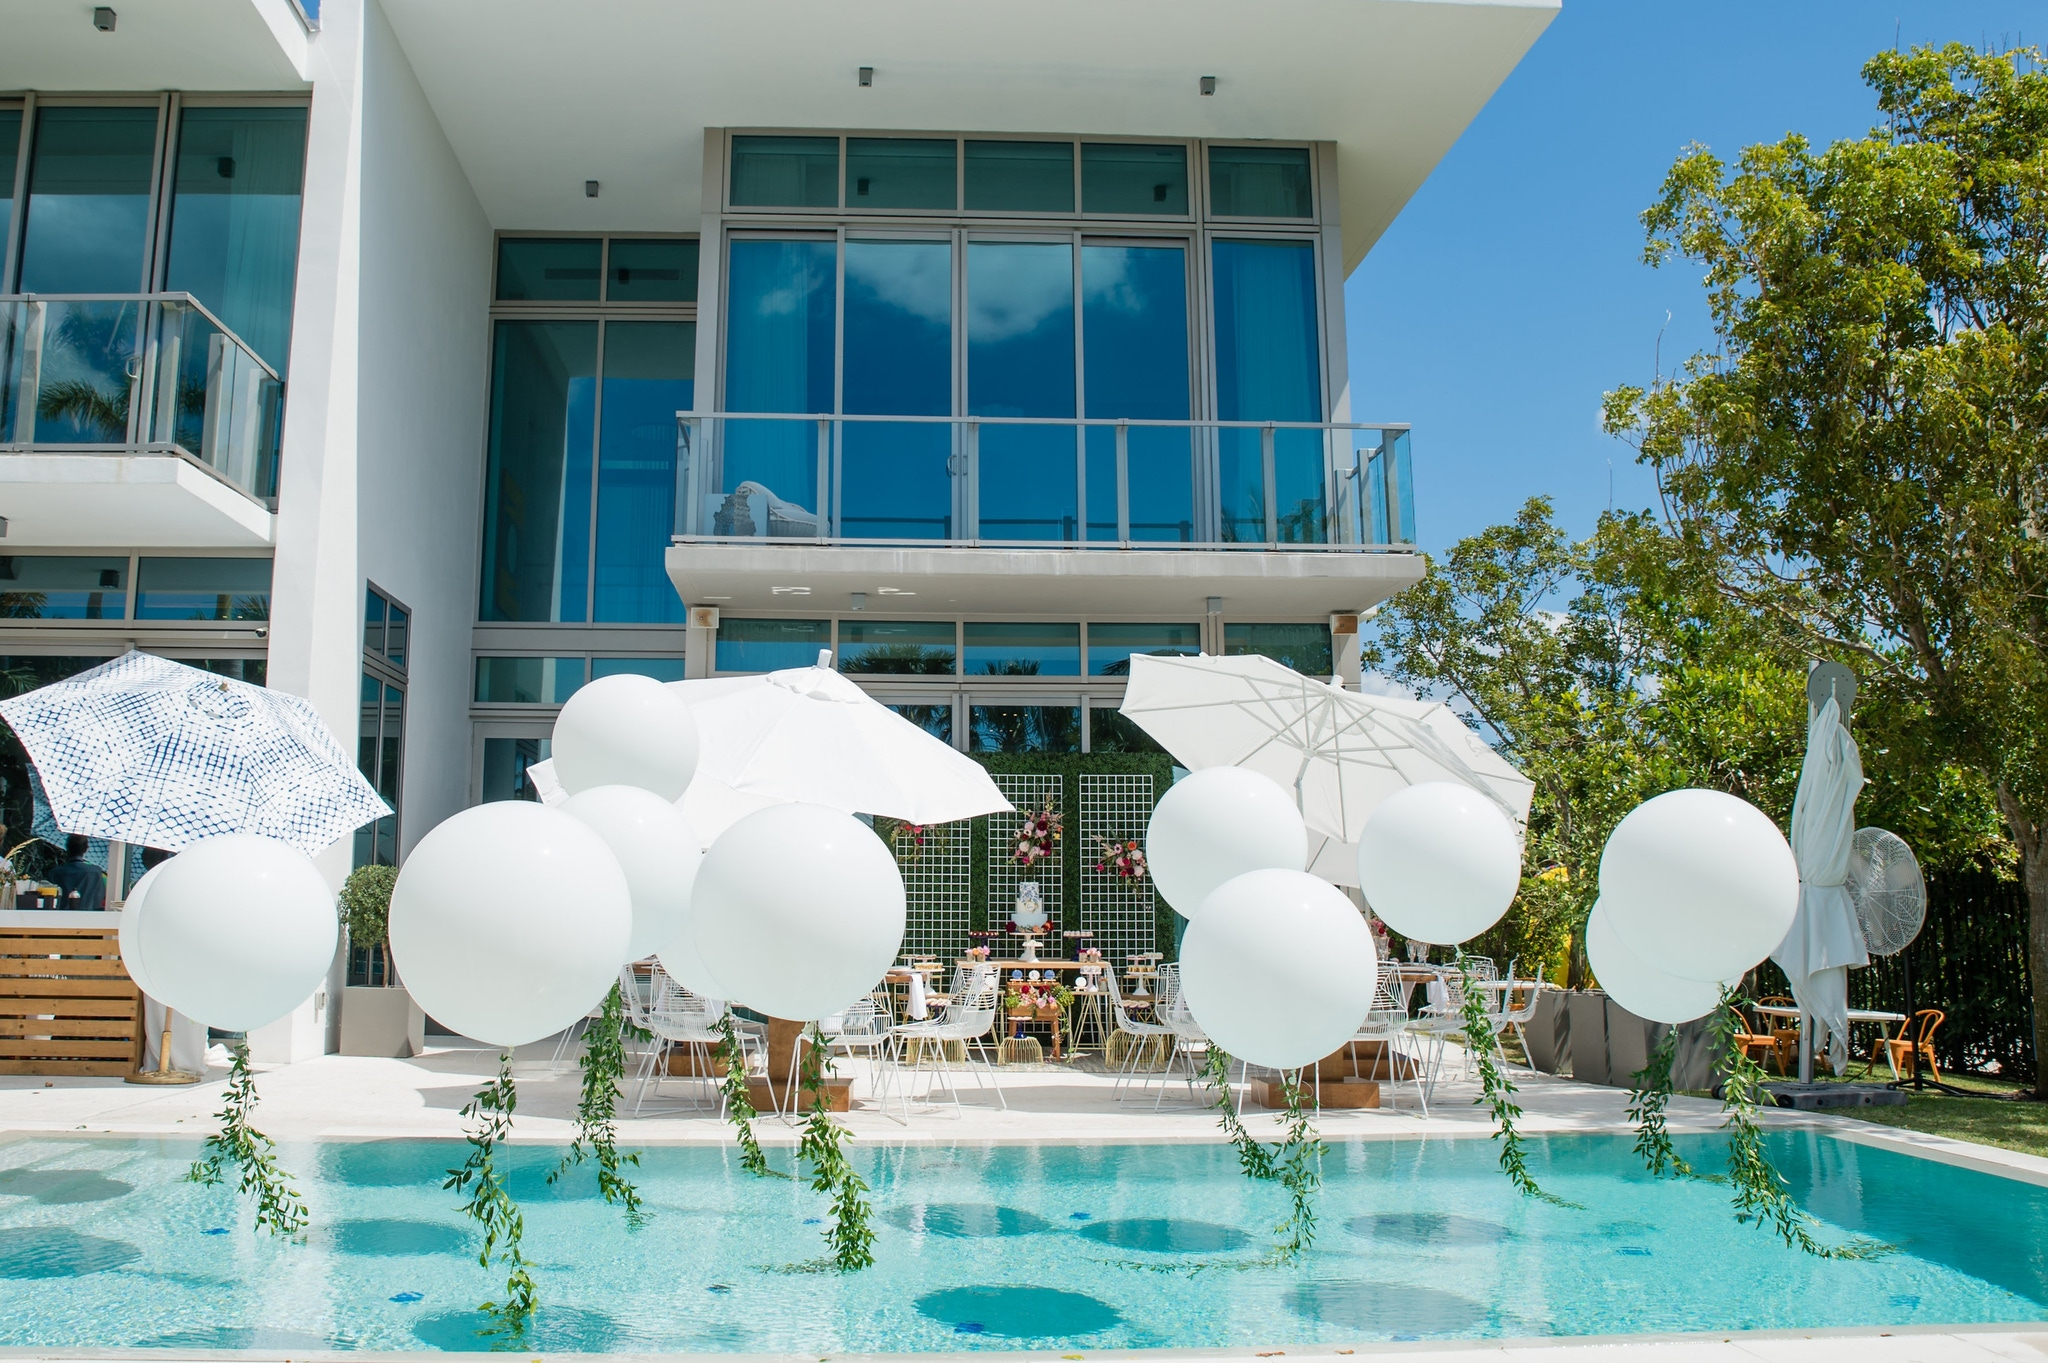 White balloons in a pool